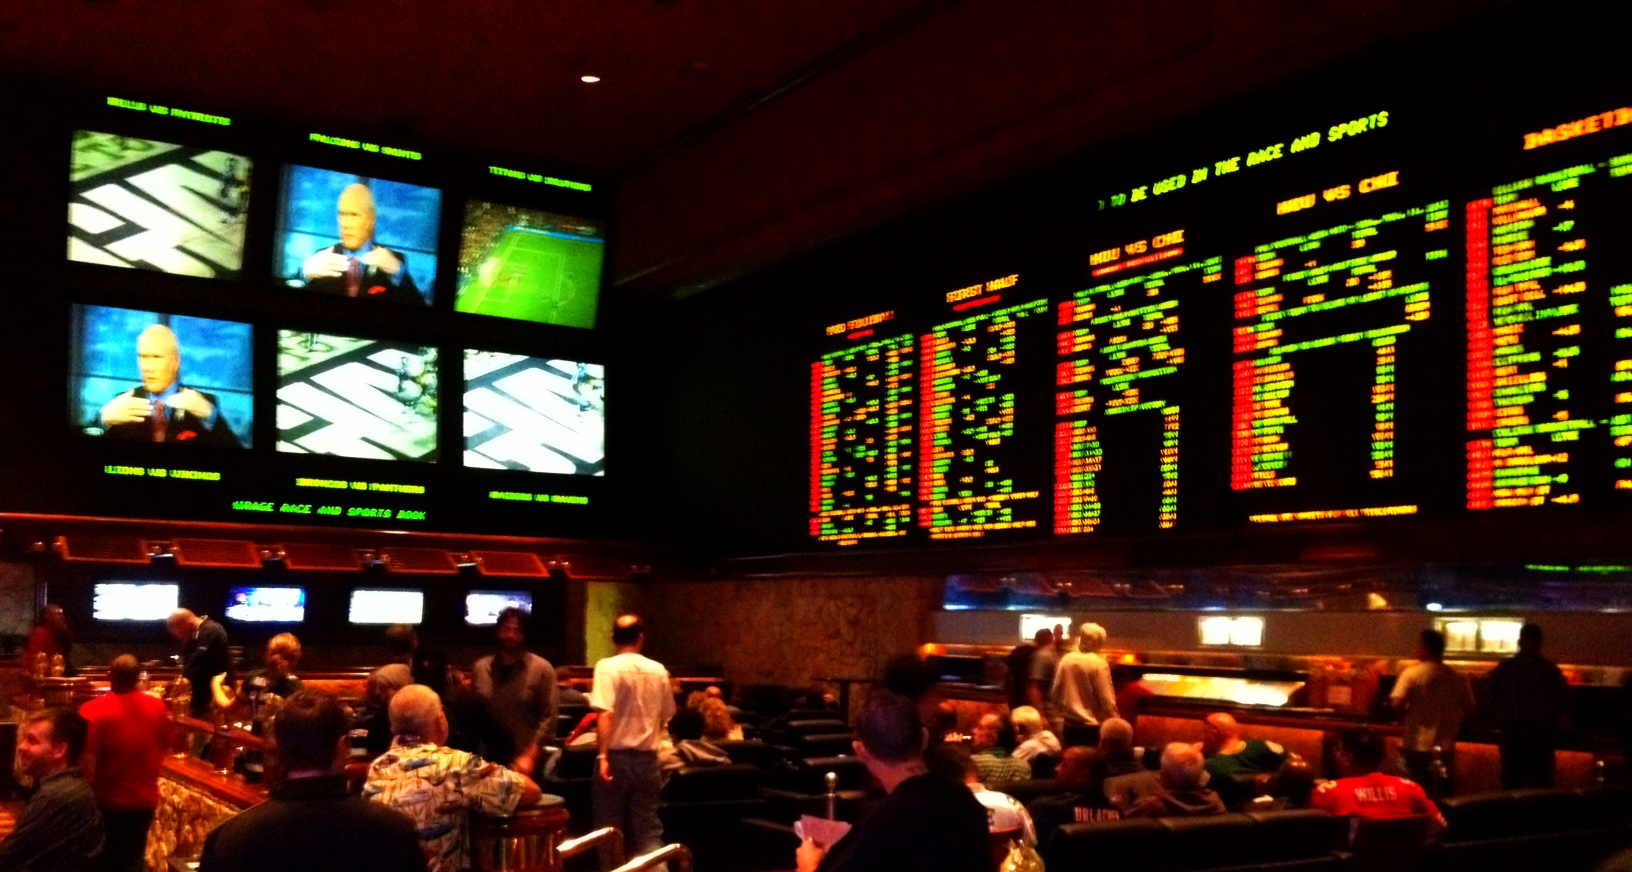 ncaa football picks today sportsbook mandalay bay